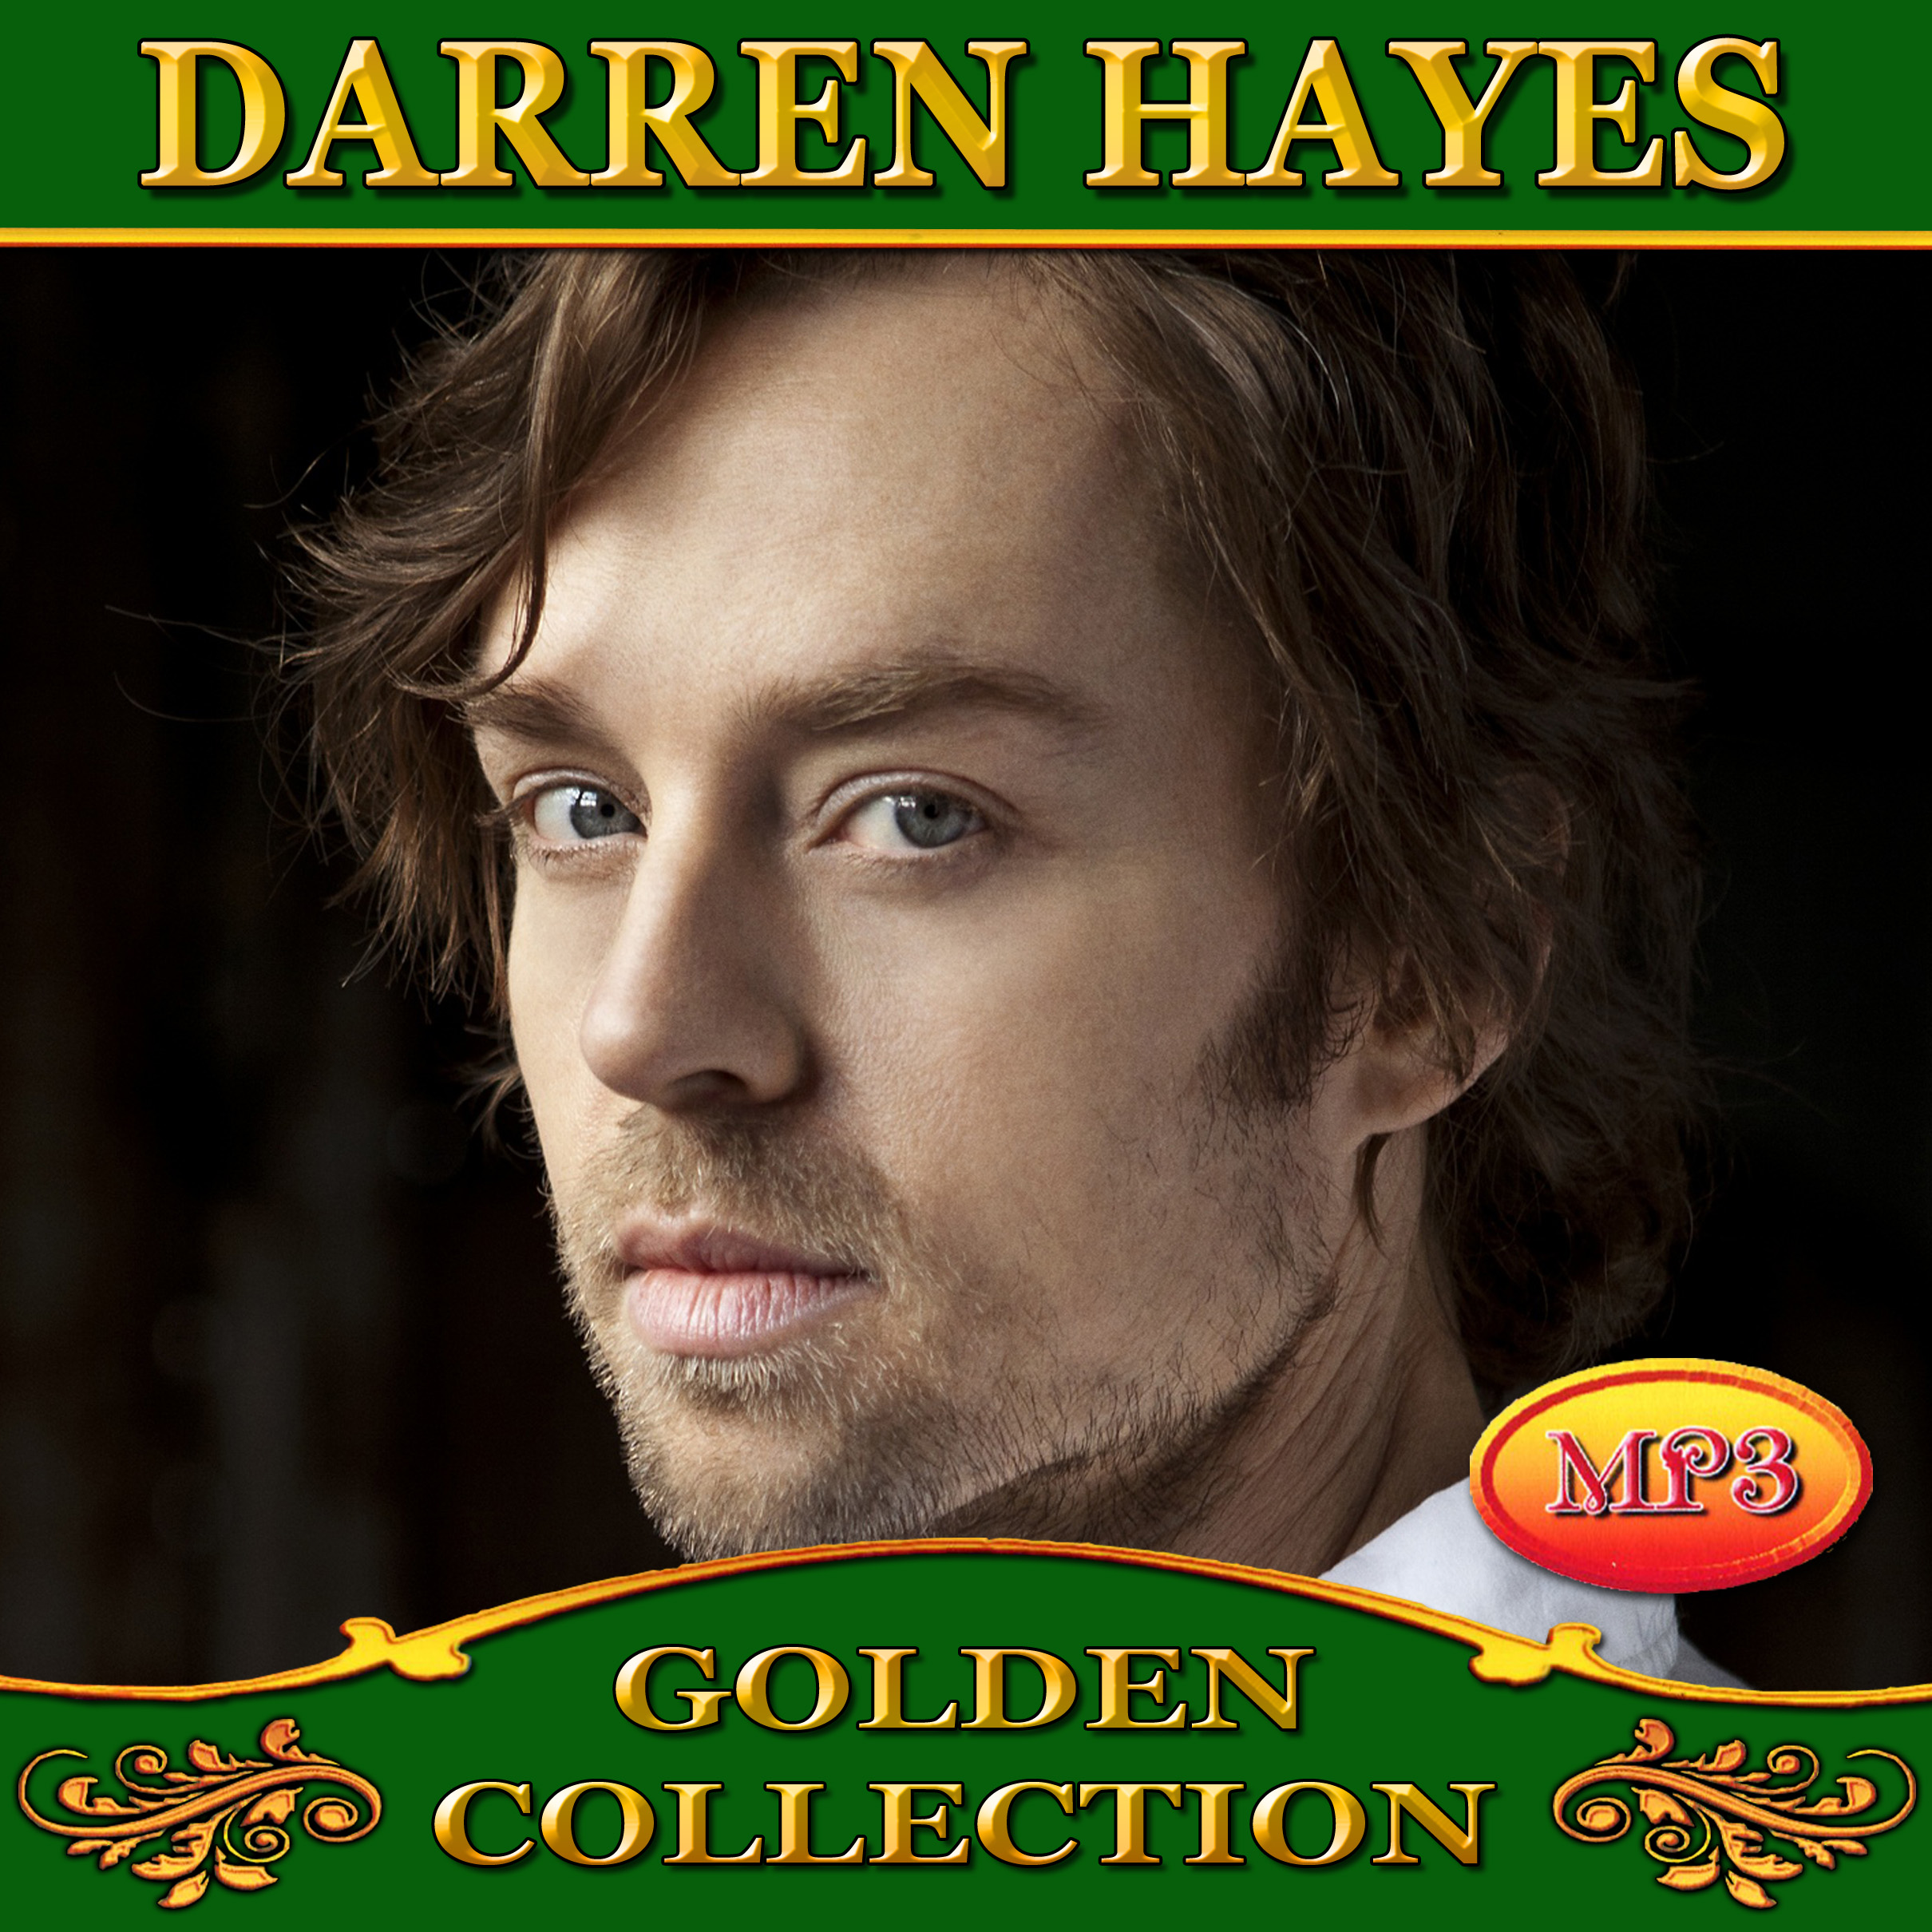 Darren Hayes [mp3]